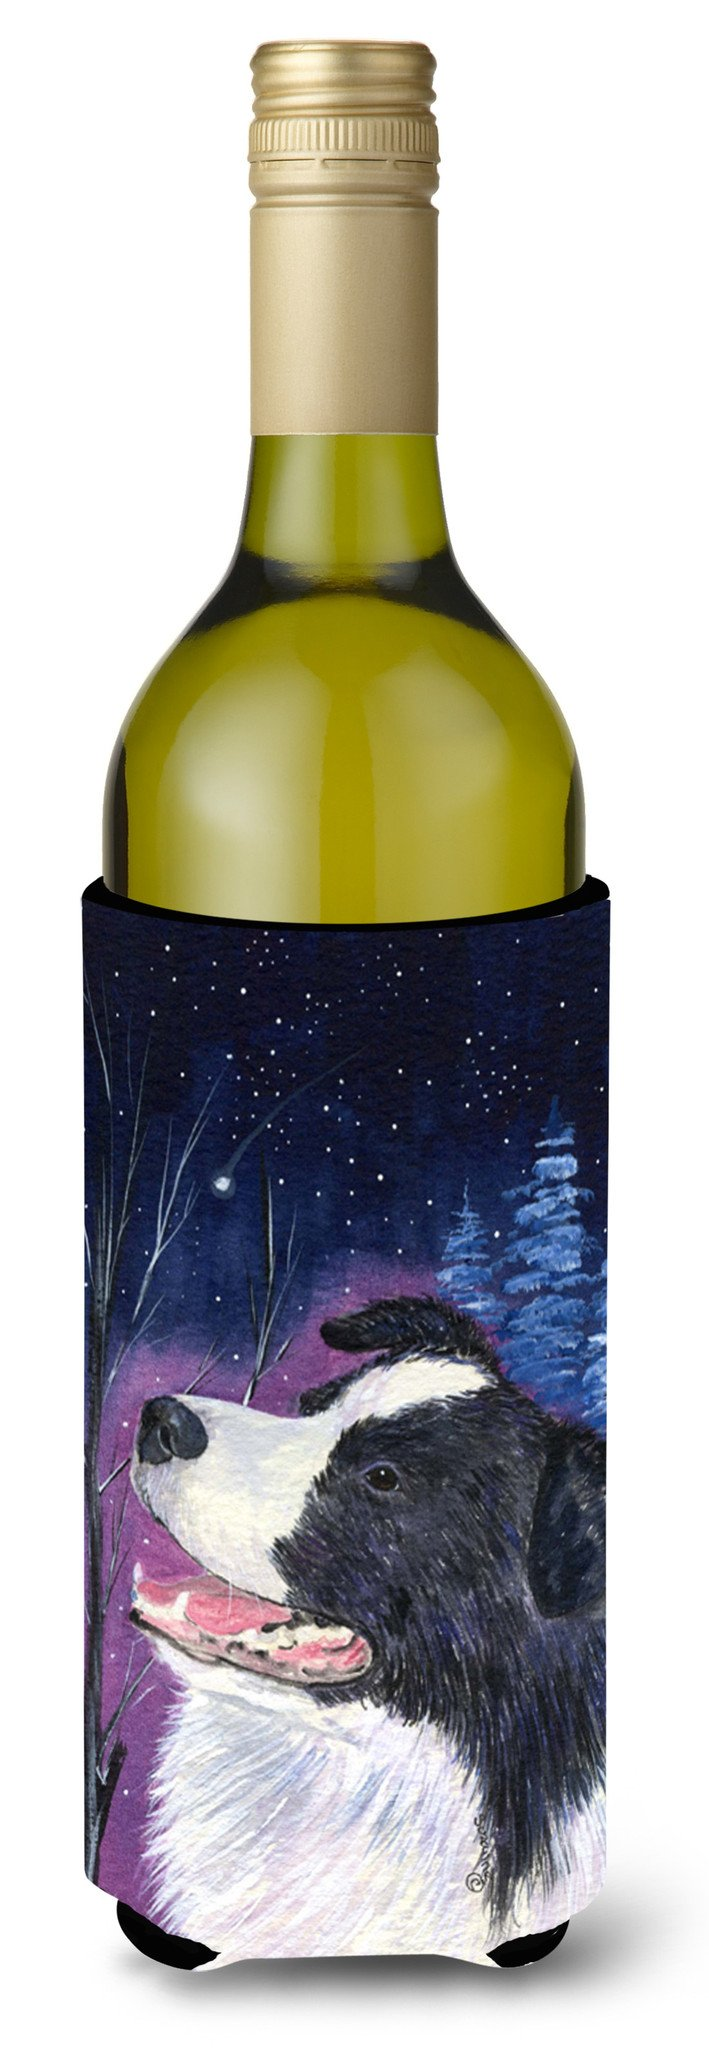 Starry Night Border Collie Wine Bottle Beverage Insulator Beverage Insulator Hugger by Caroline's Treasures